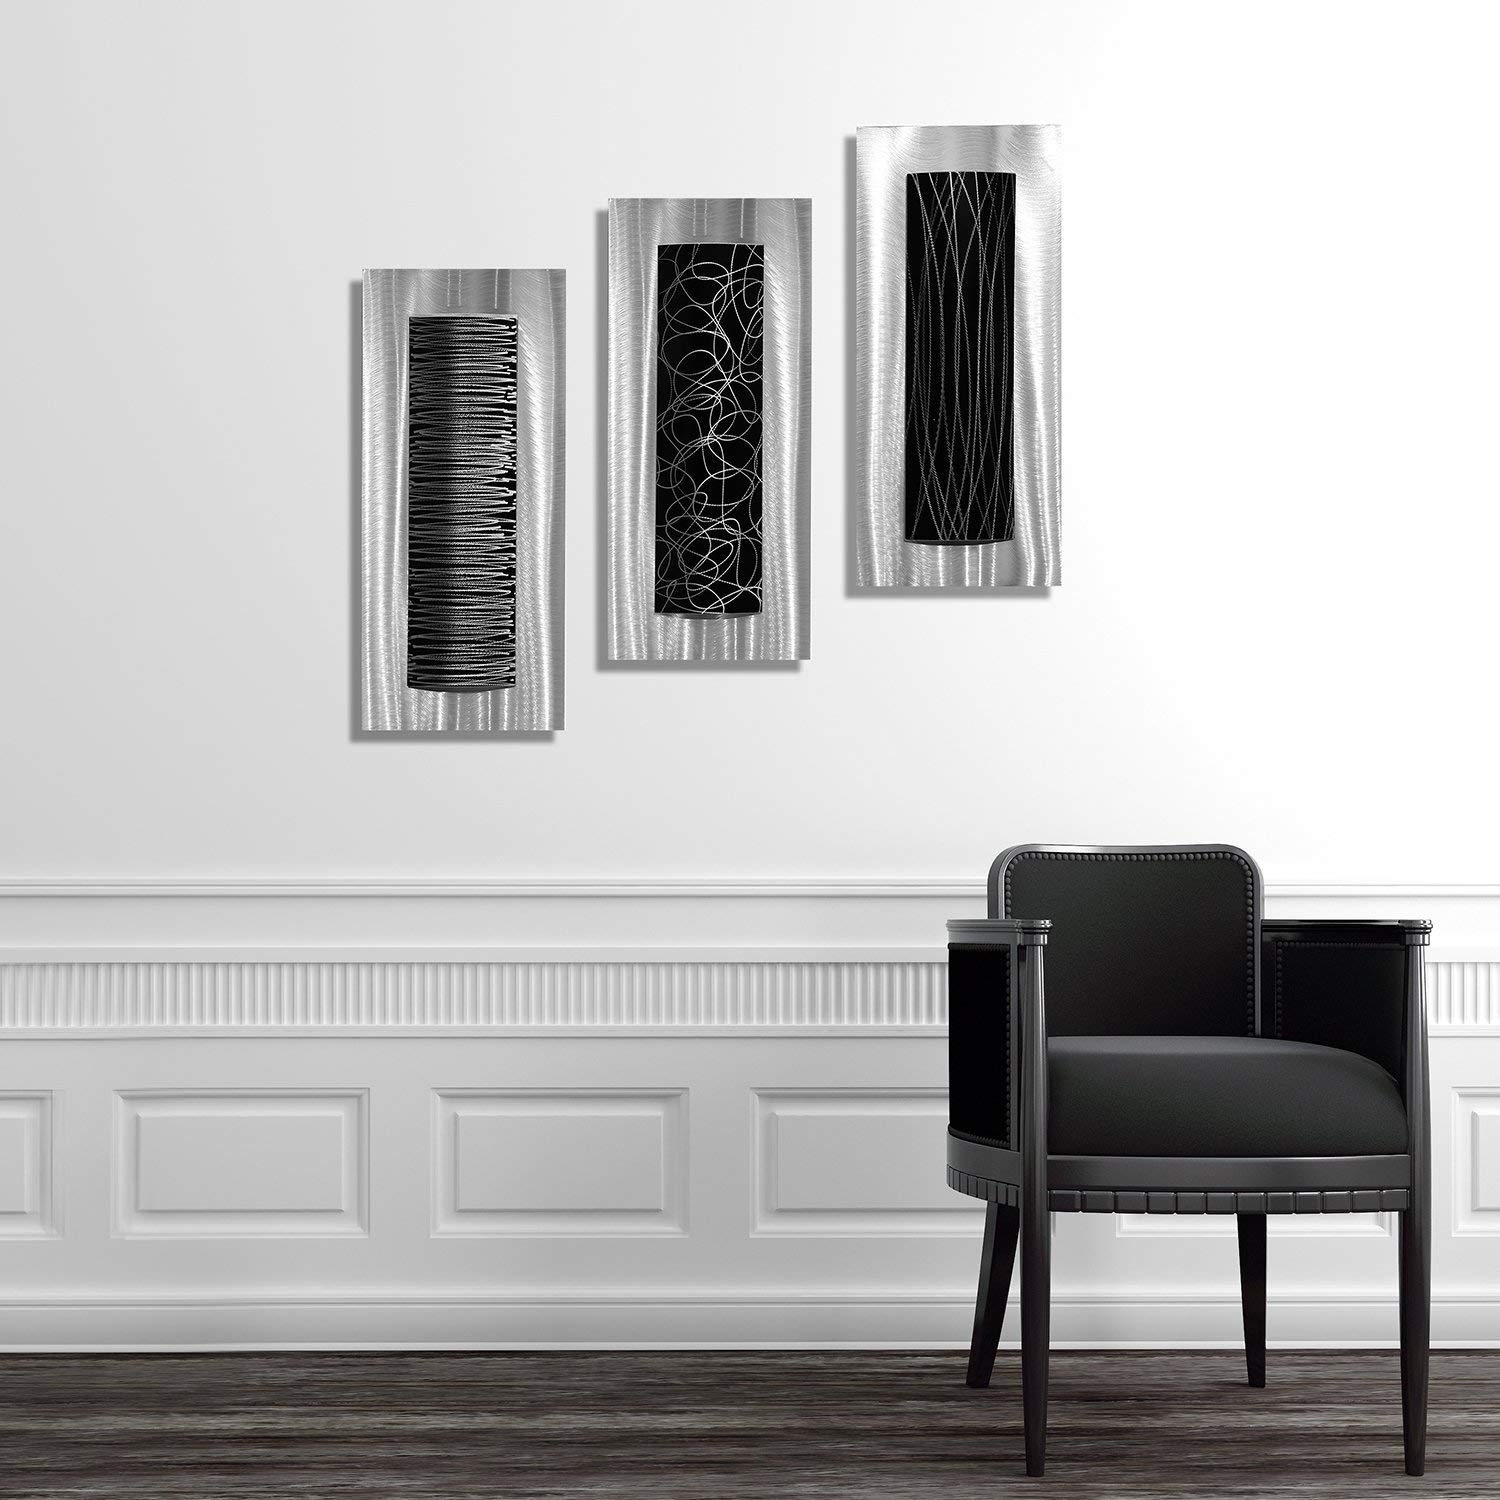 Amazon: Statements2000 Contemporary Black & Silver Abstract intended for Black Wall Art (Image 5 of 20)